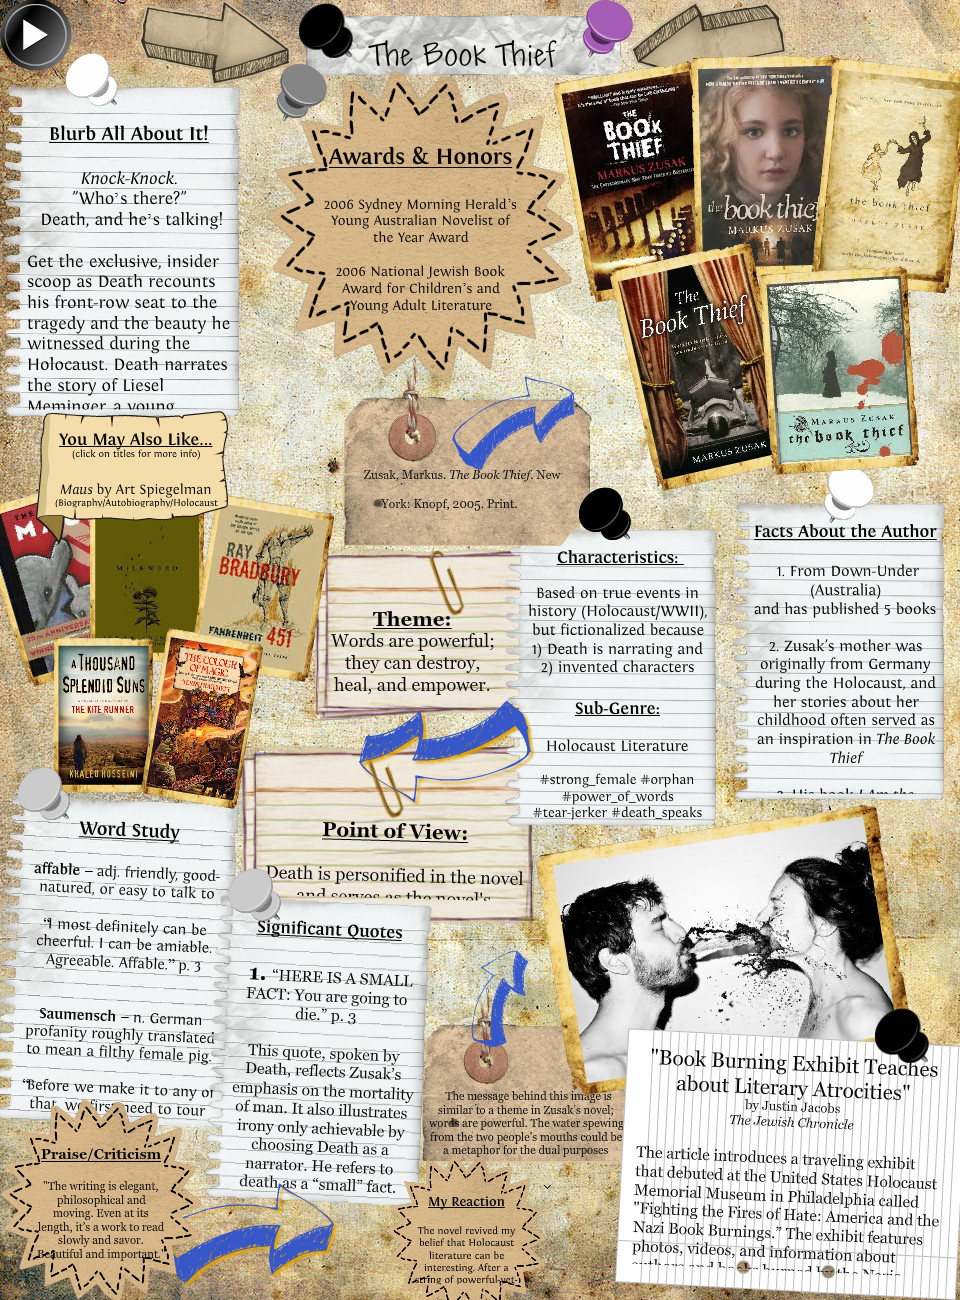 The Book Thief Summer Profile Project: text, images, music, video